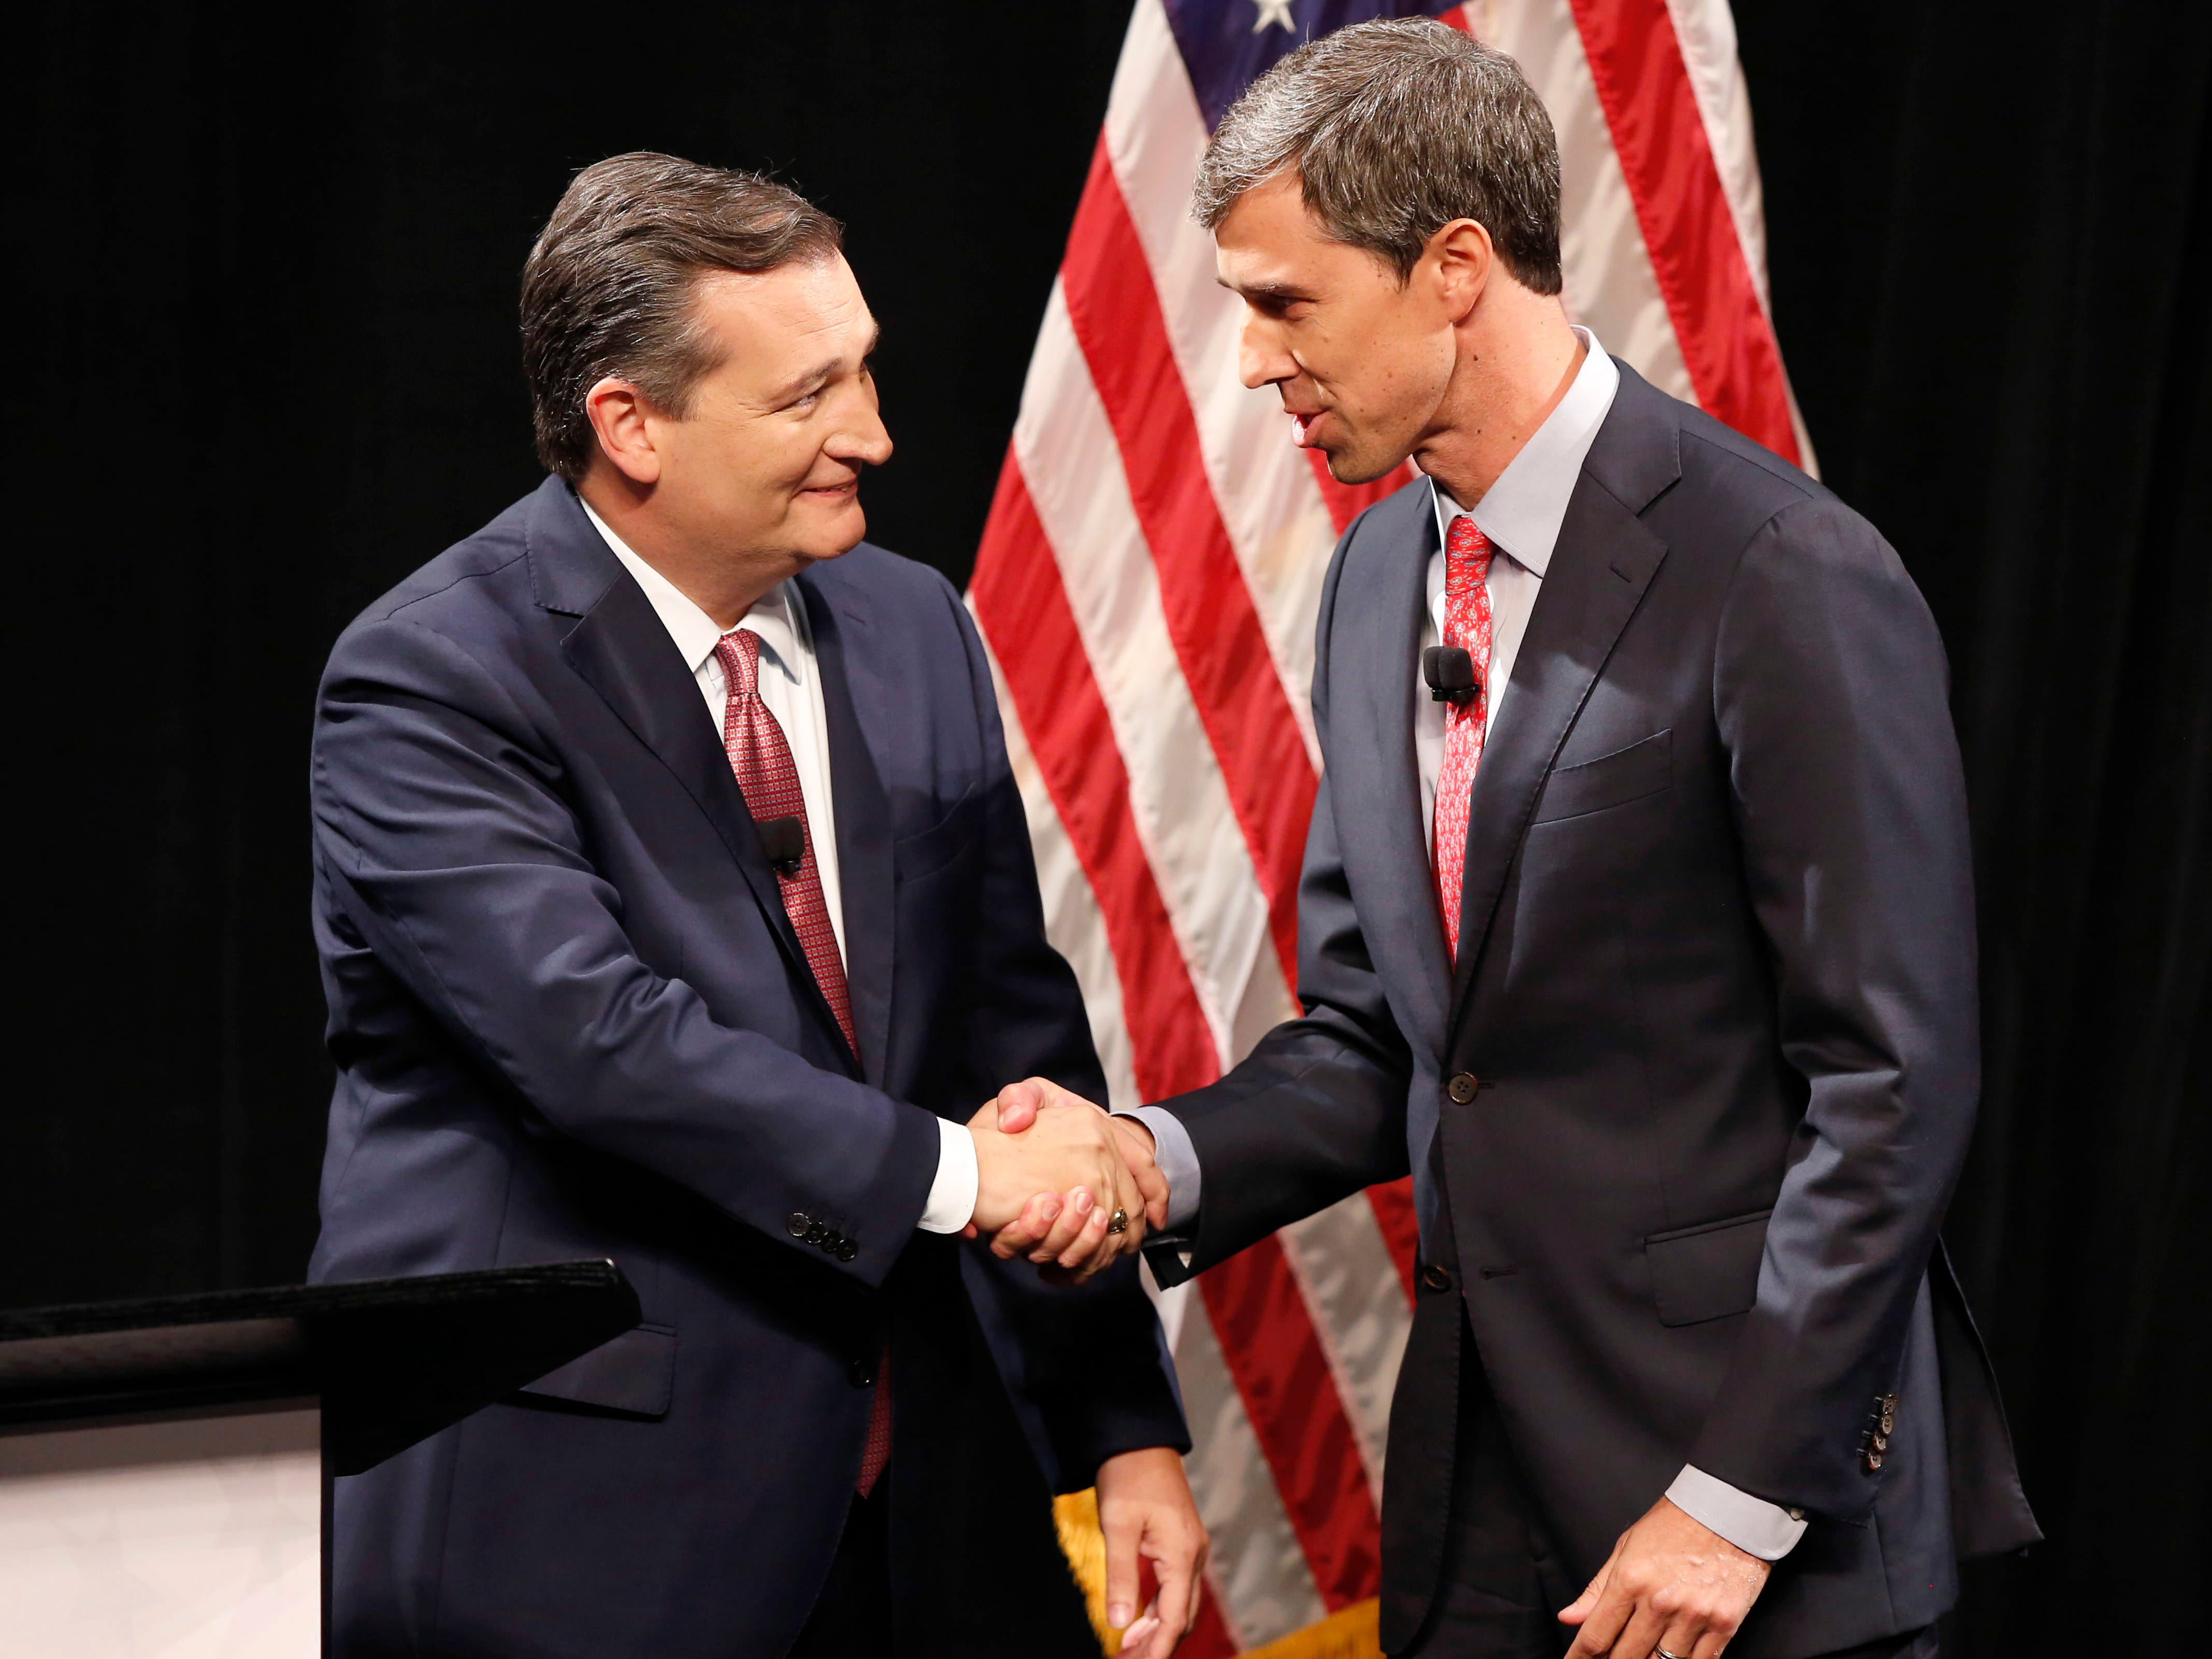 Republican U.S. Sen. Ted Cruz, left, and Democratic U.S. Rep. Beto O'Rourke shake hands before their first debate for a Texas U.S. Senate seat Sept. 21, 2018, in Dallas.